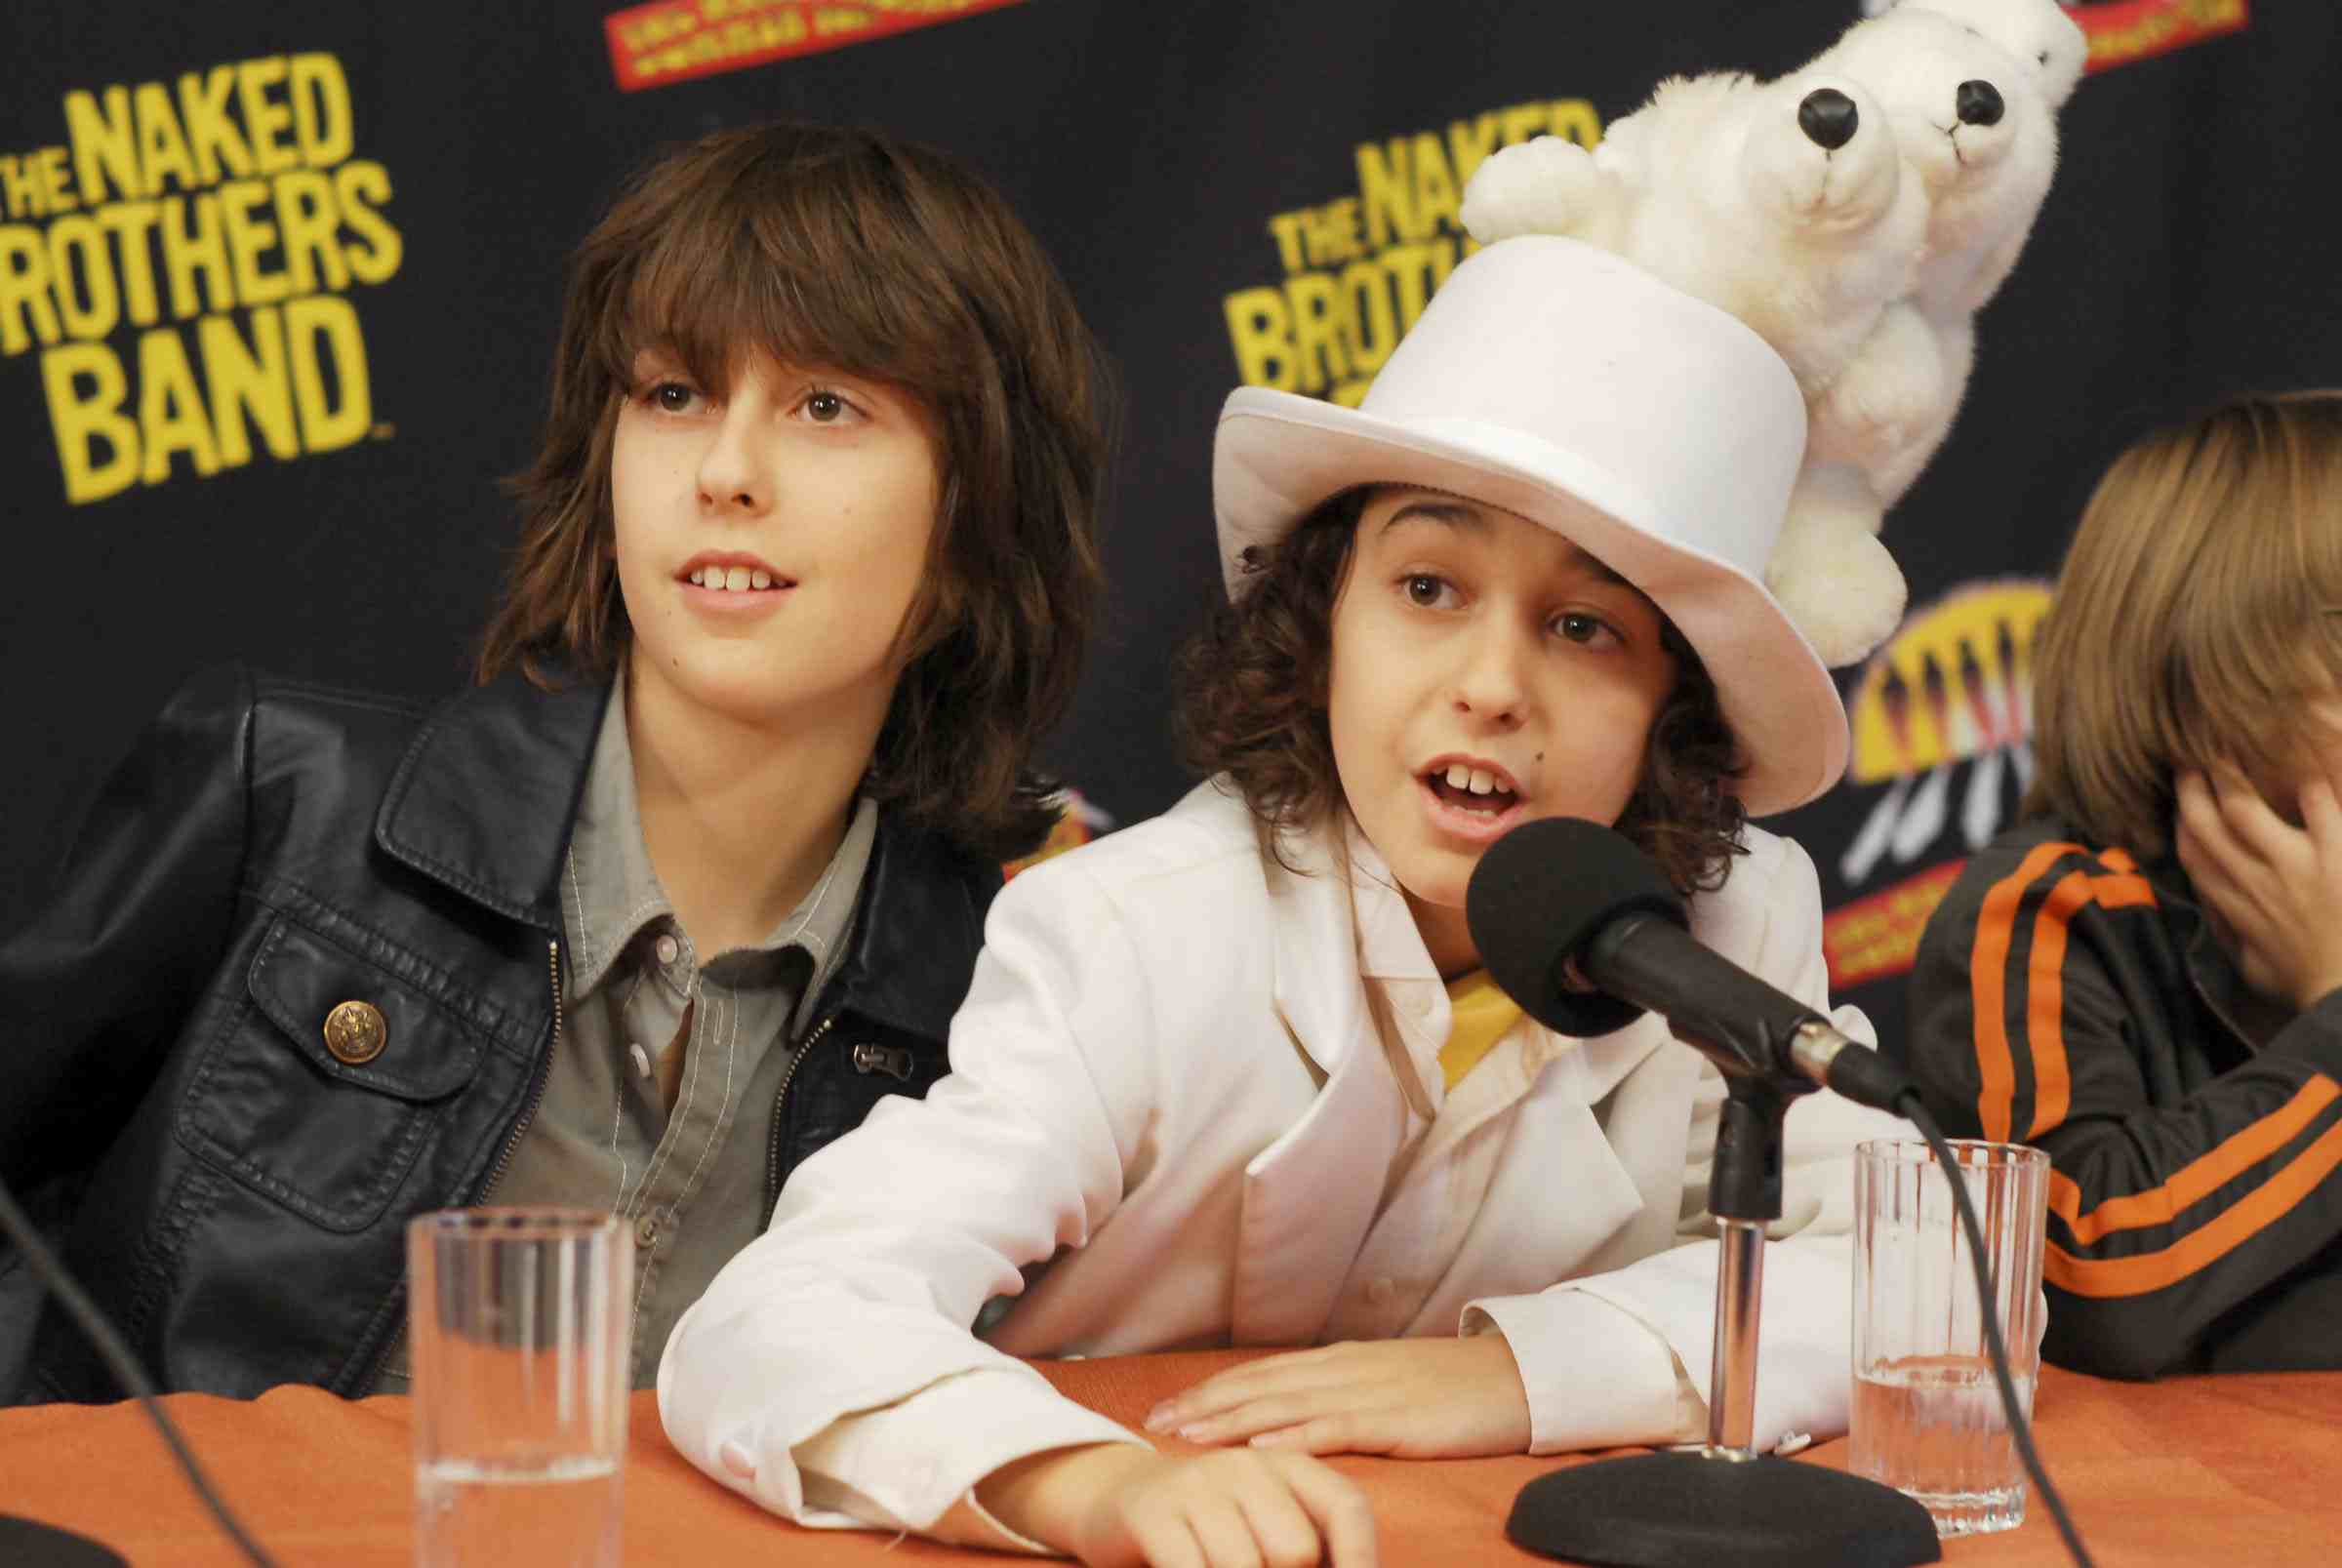 Naked brothers band hot girls Nat And Alex The Naked Brothers Band Photo 38738190 Fanpop